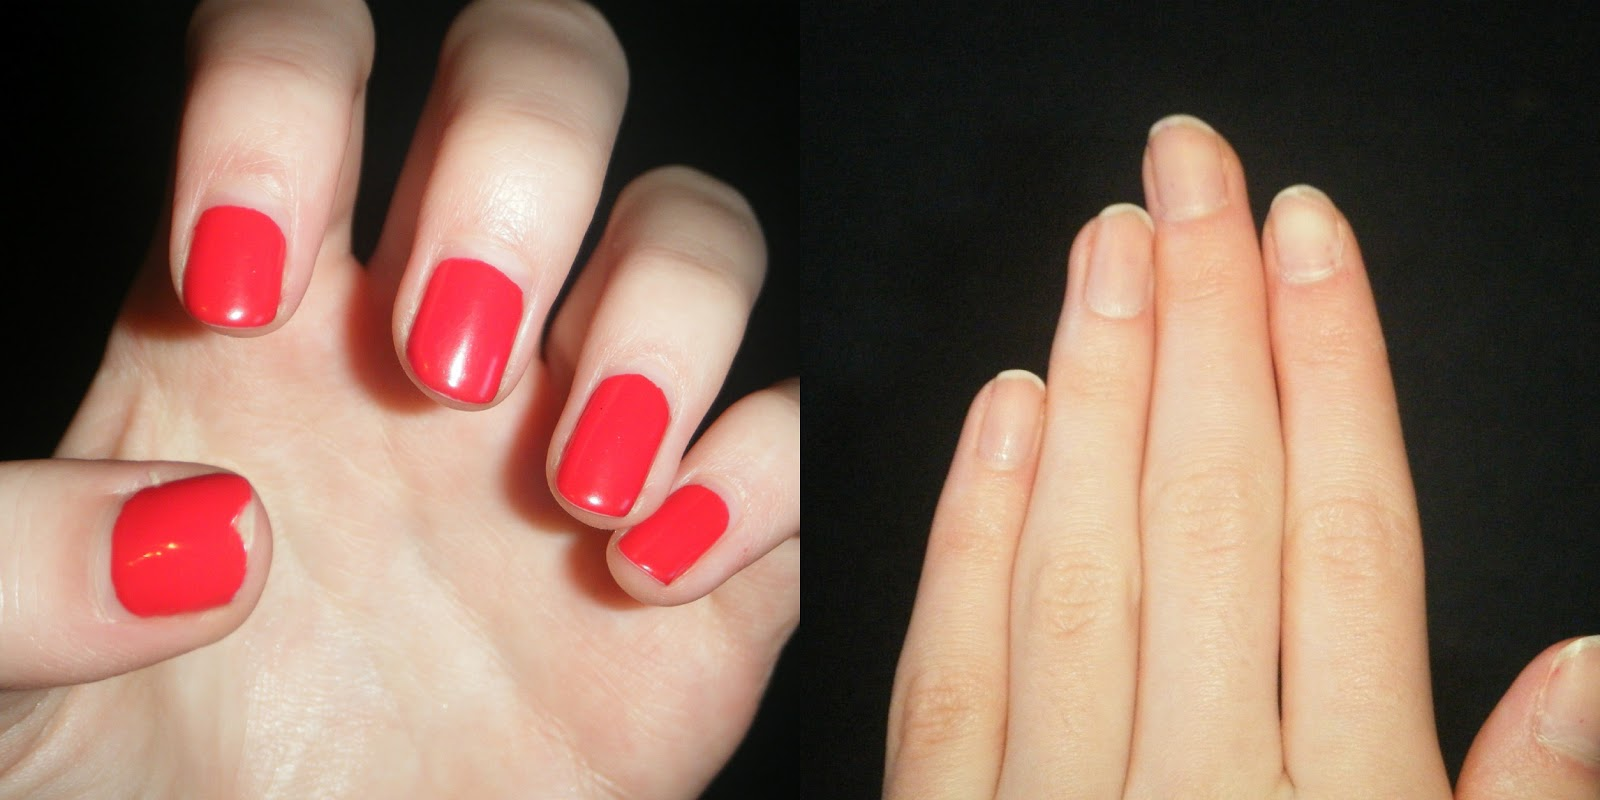 Lifestyle Blog: How To Remove A Shellac Manicure At Home On A Budget